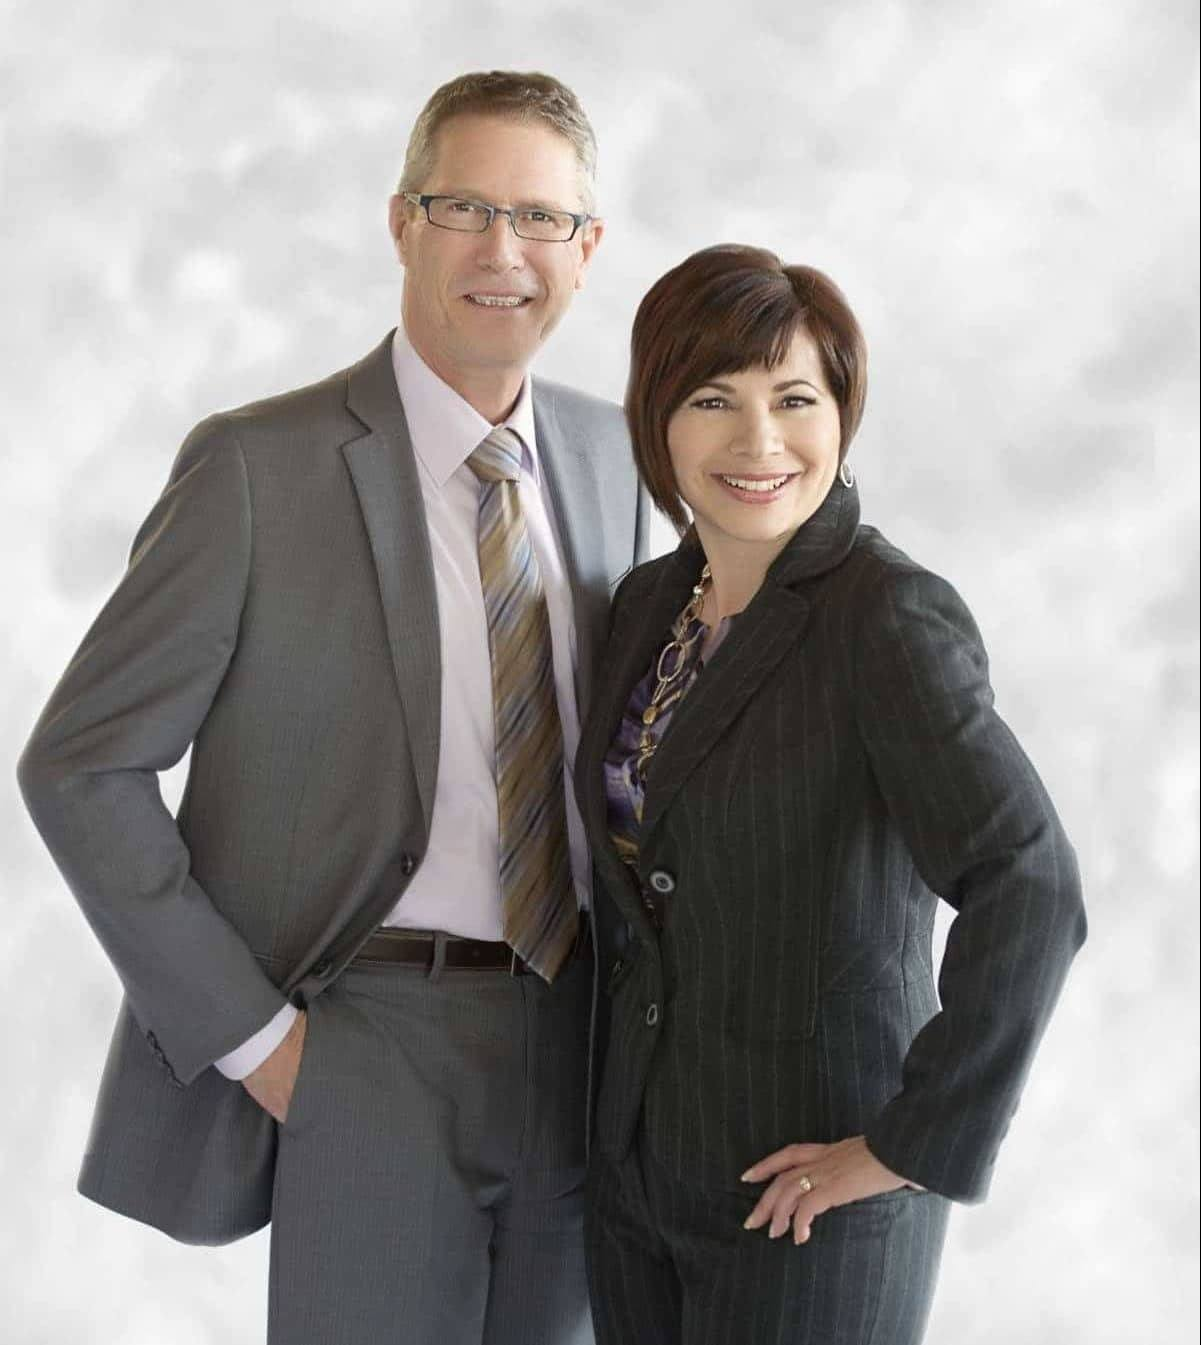 Style for Success -Joanne Blake and Terry Pithers